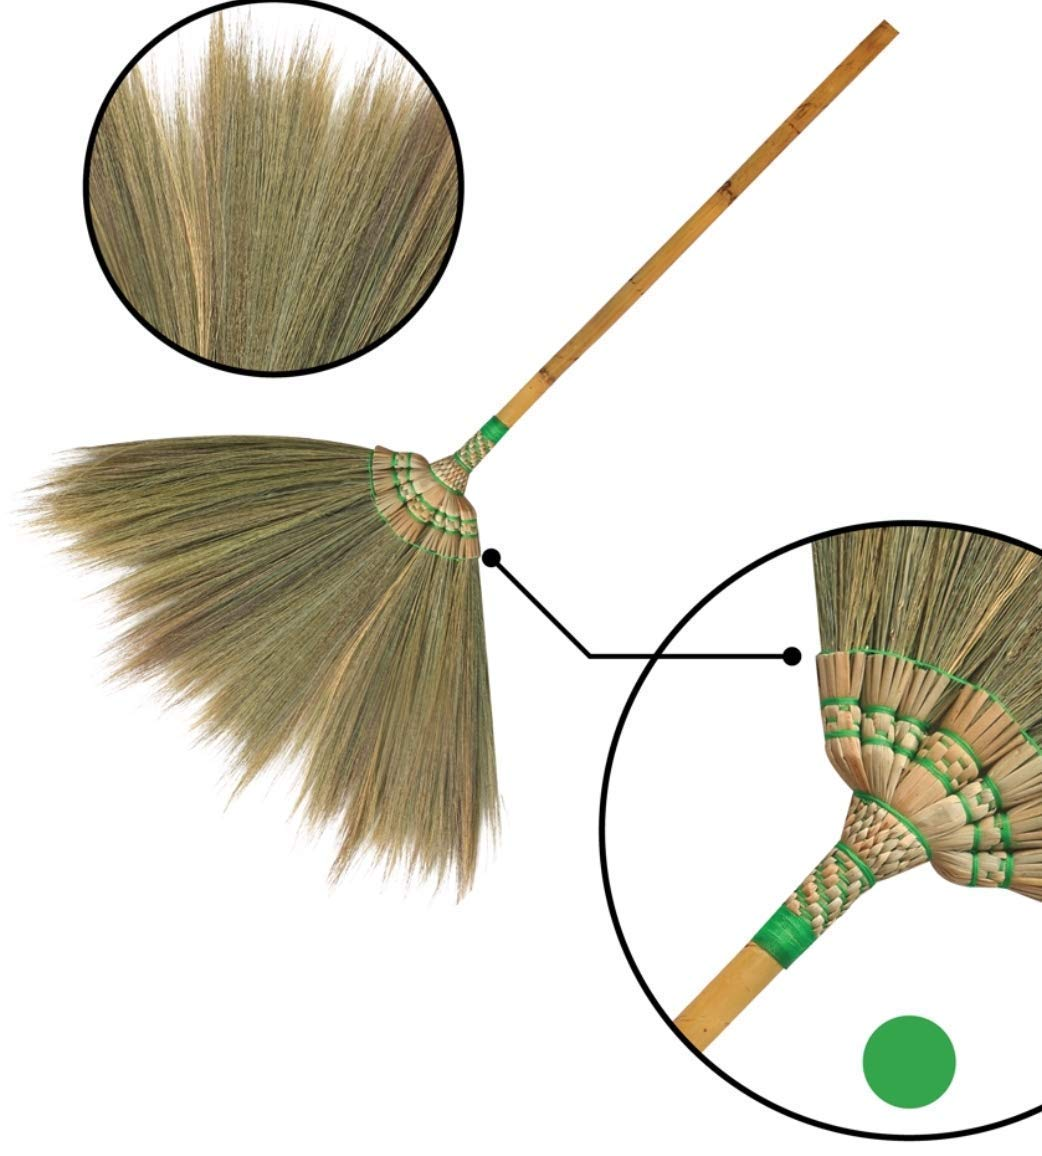 Natural Grass Broom 100% Handmade with a Bamboo Broomstick Embroidered Woven Nylon Top and Bottom Handle and The Reed Tree Hand Grip Thai Broom for Indoor and Outdoor Use - Soft, Large, Wide, Vintage by SKENNOVA